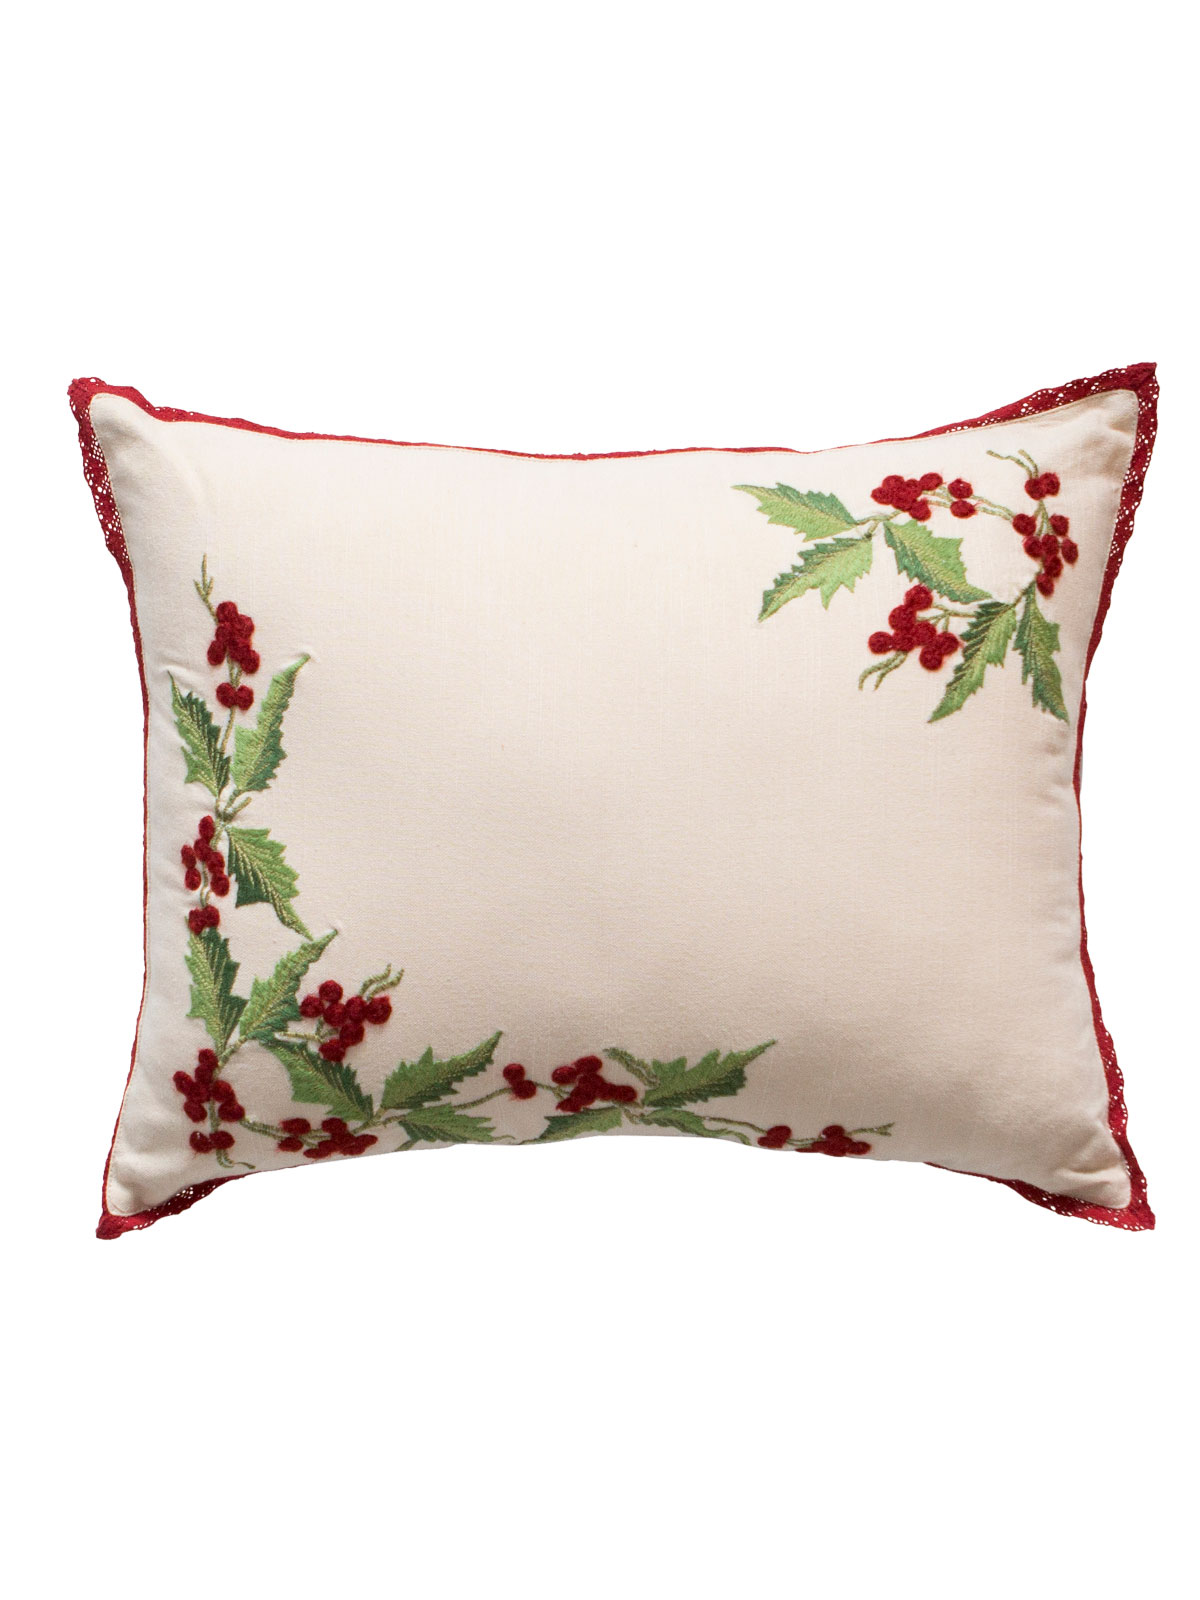 Hazel S Holly Embroidered Cushion Your Home Cushions